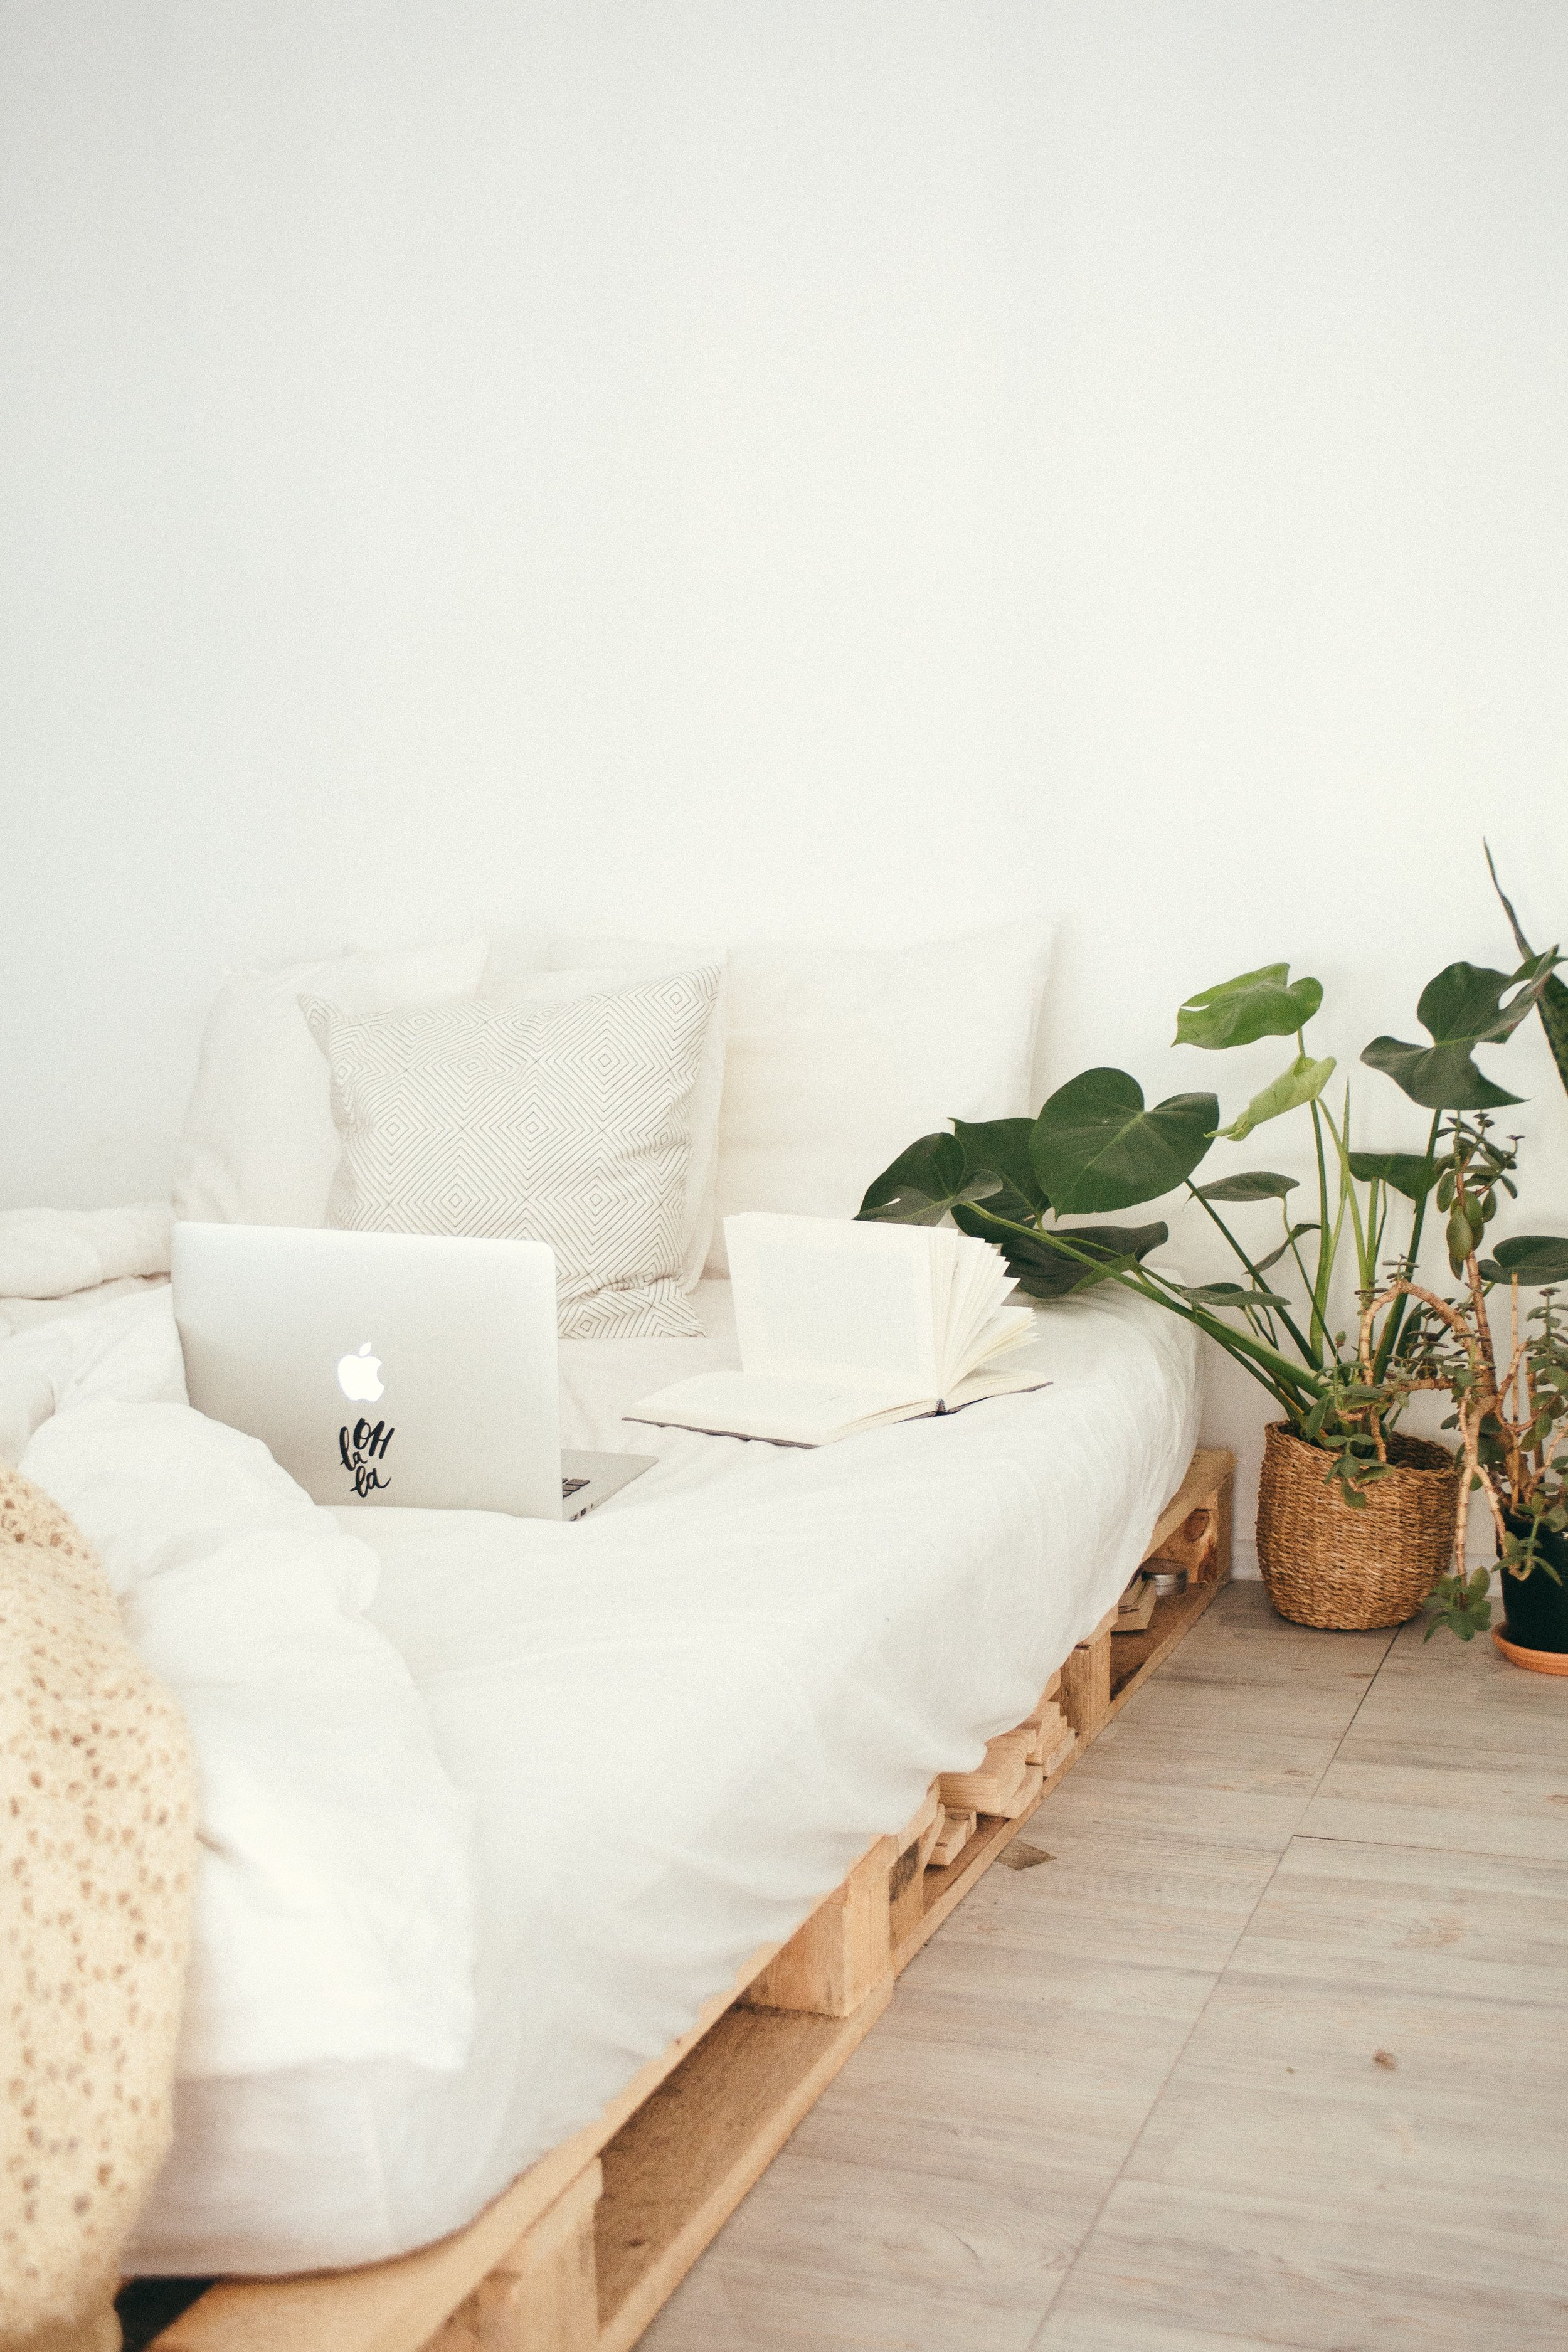 - 10 Places to Find Used Furniture in Toronto